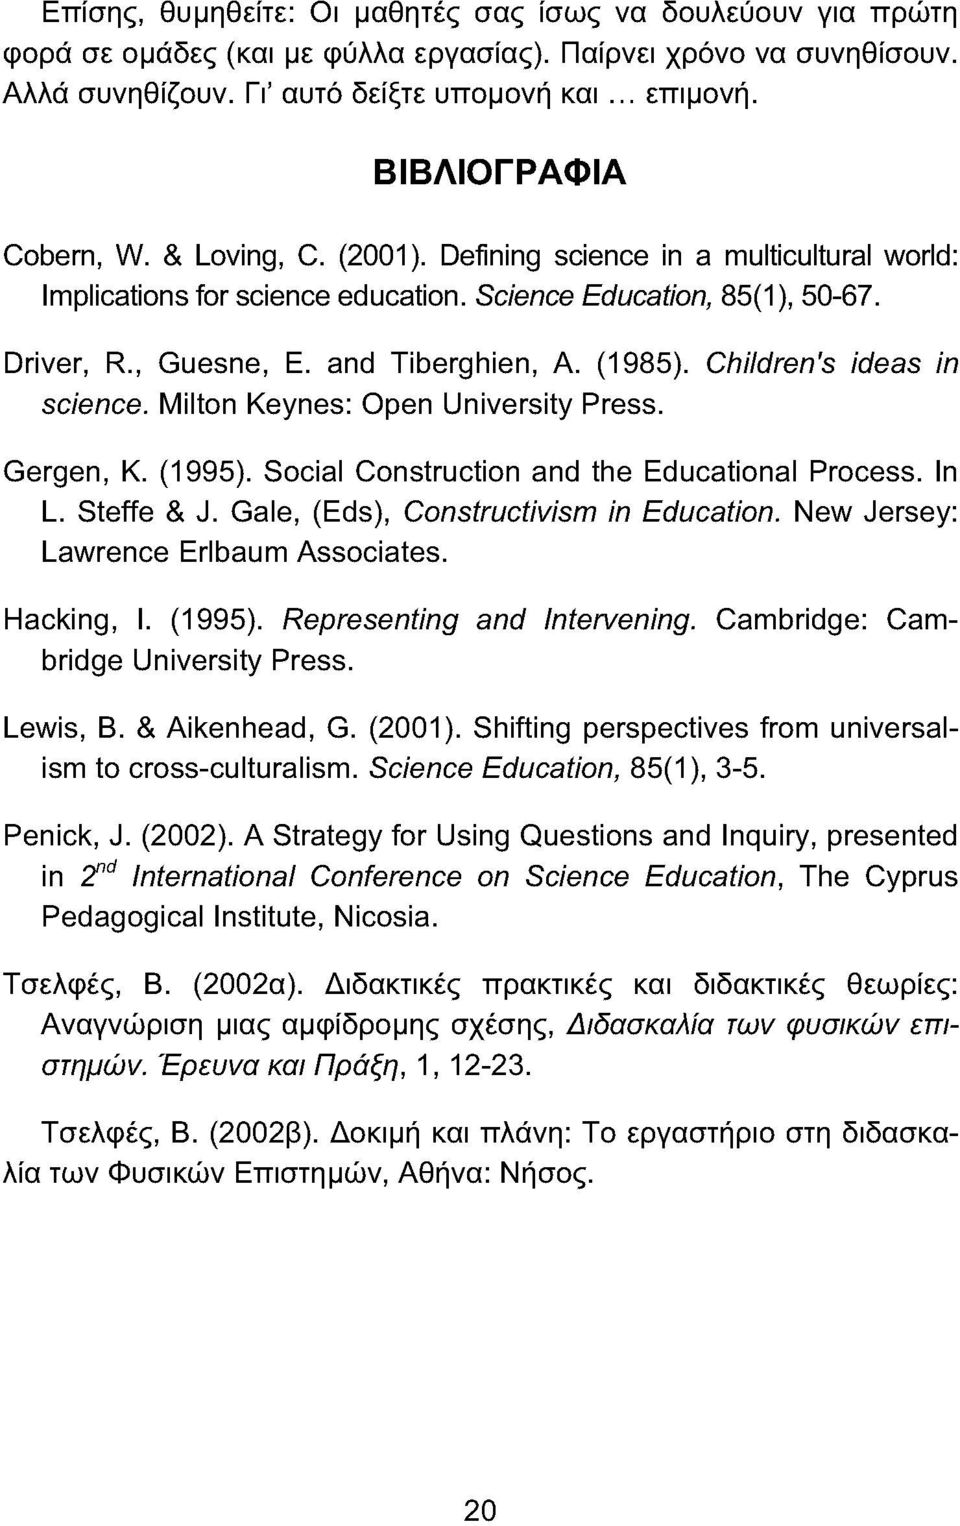 (1985). Children's ideas in science. Milton Keynes: Open University Press. Gergen, K. (1995). Social Construction and the Educational Process. In L. Steffe & J.